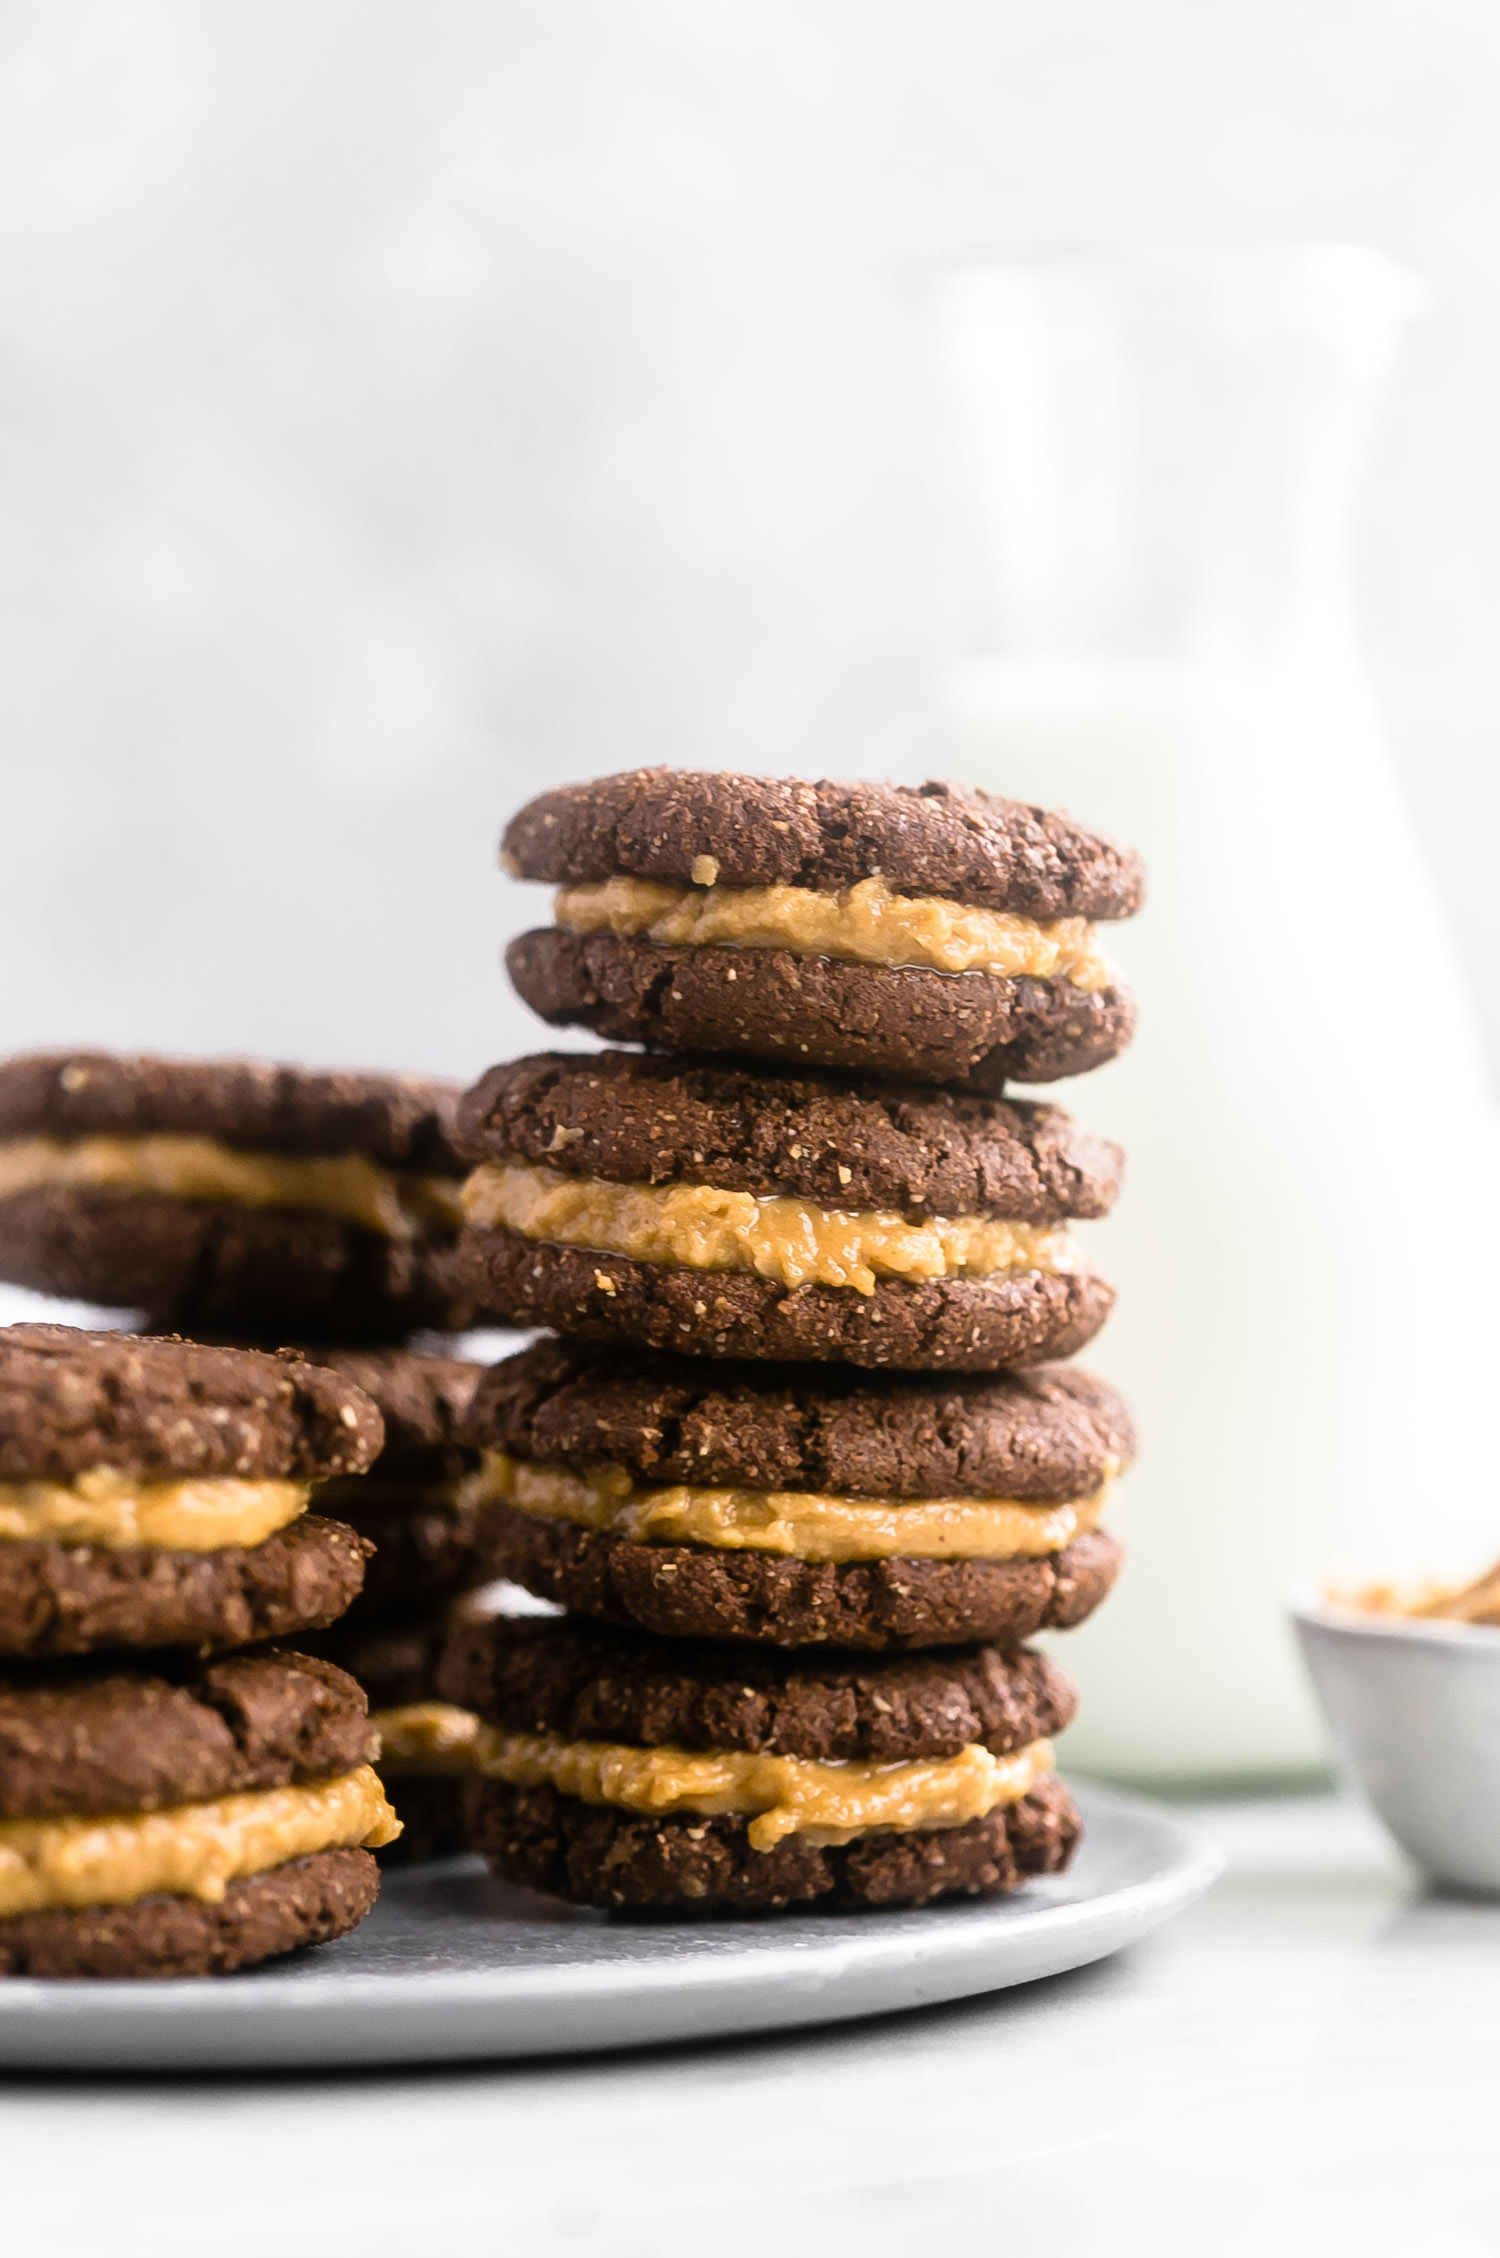 Gluten-Free Chocolate Peanut Butter Sandwich Cookies: rich, chewy, tender chocolate cookies filled with a creamy peanut butter filling. Dairy and gluten free! | TrufflesandTrends.com